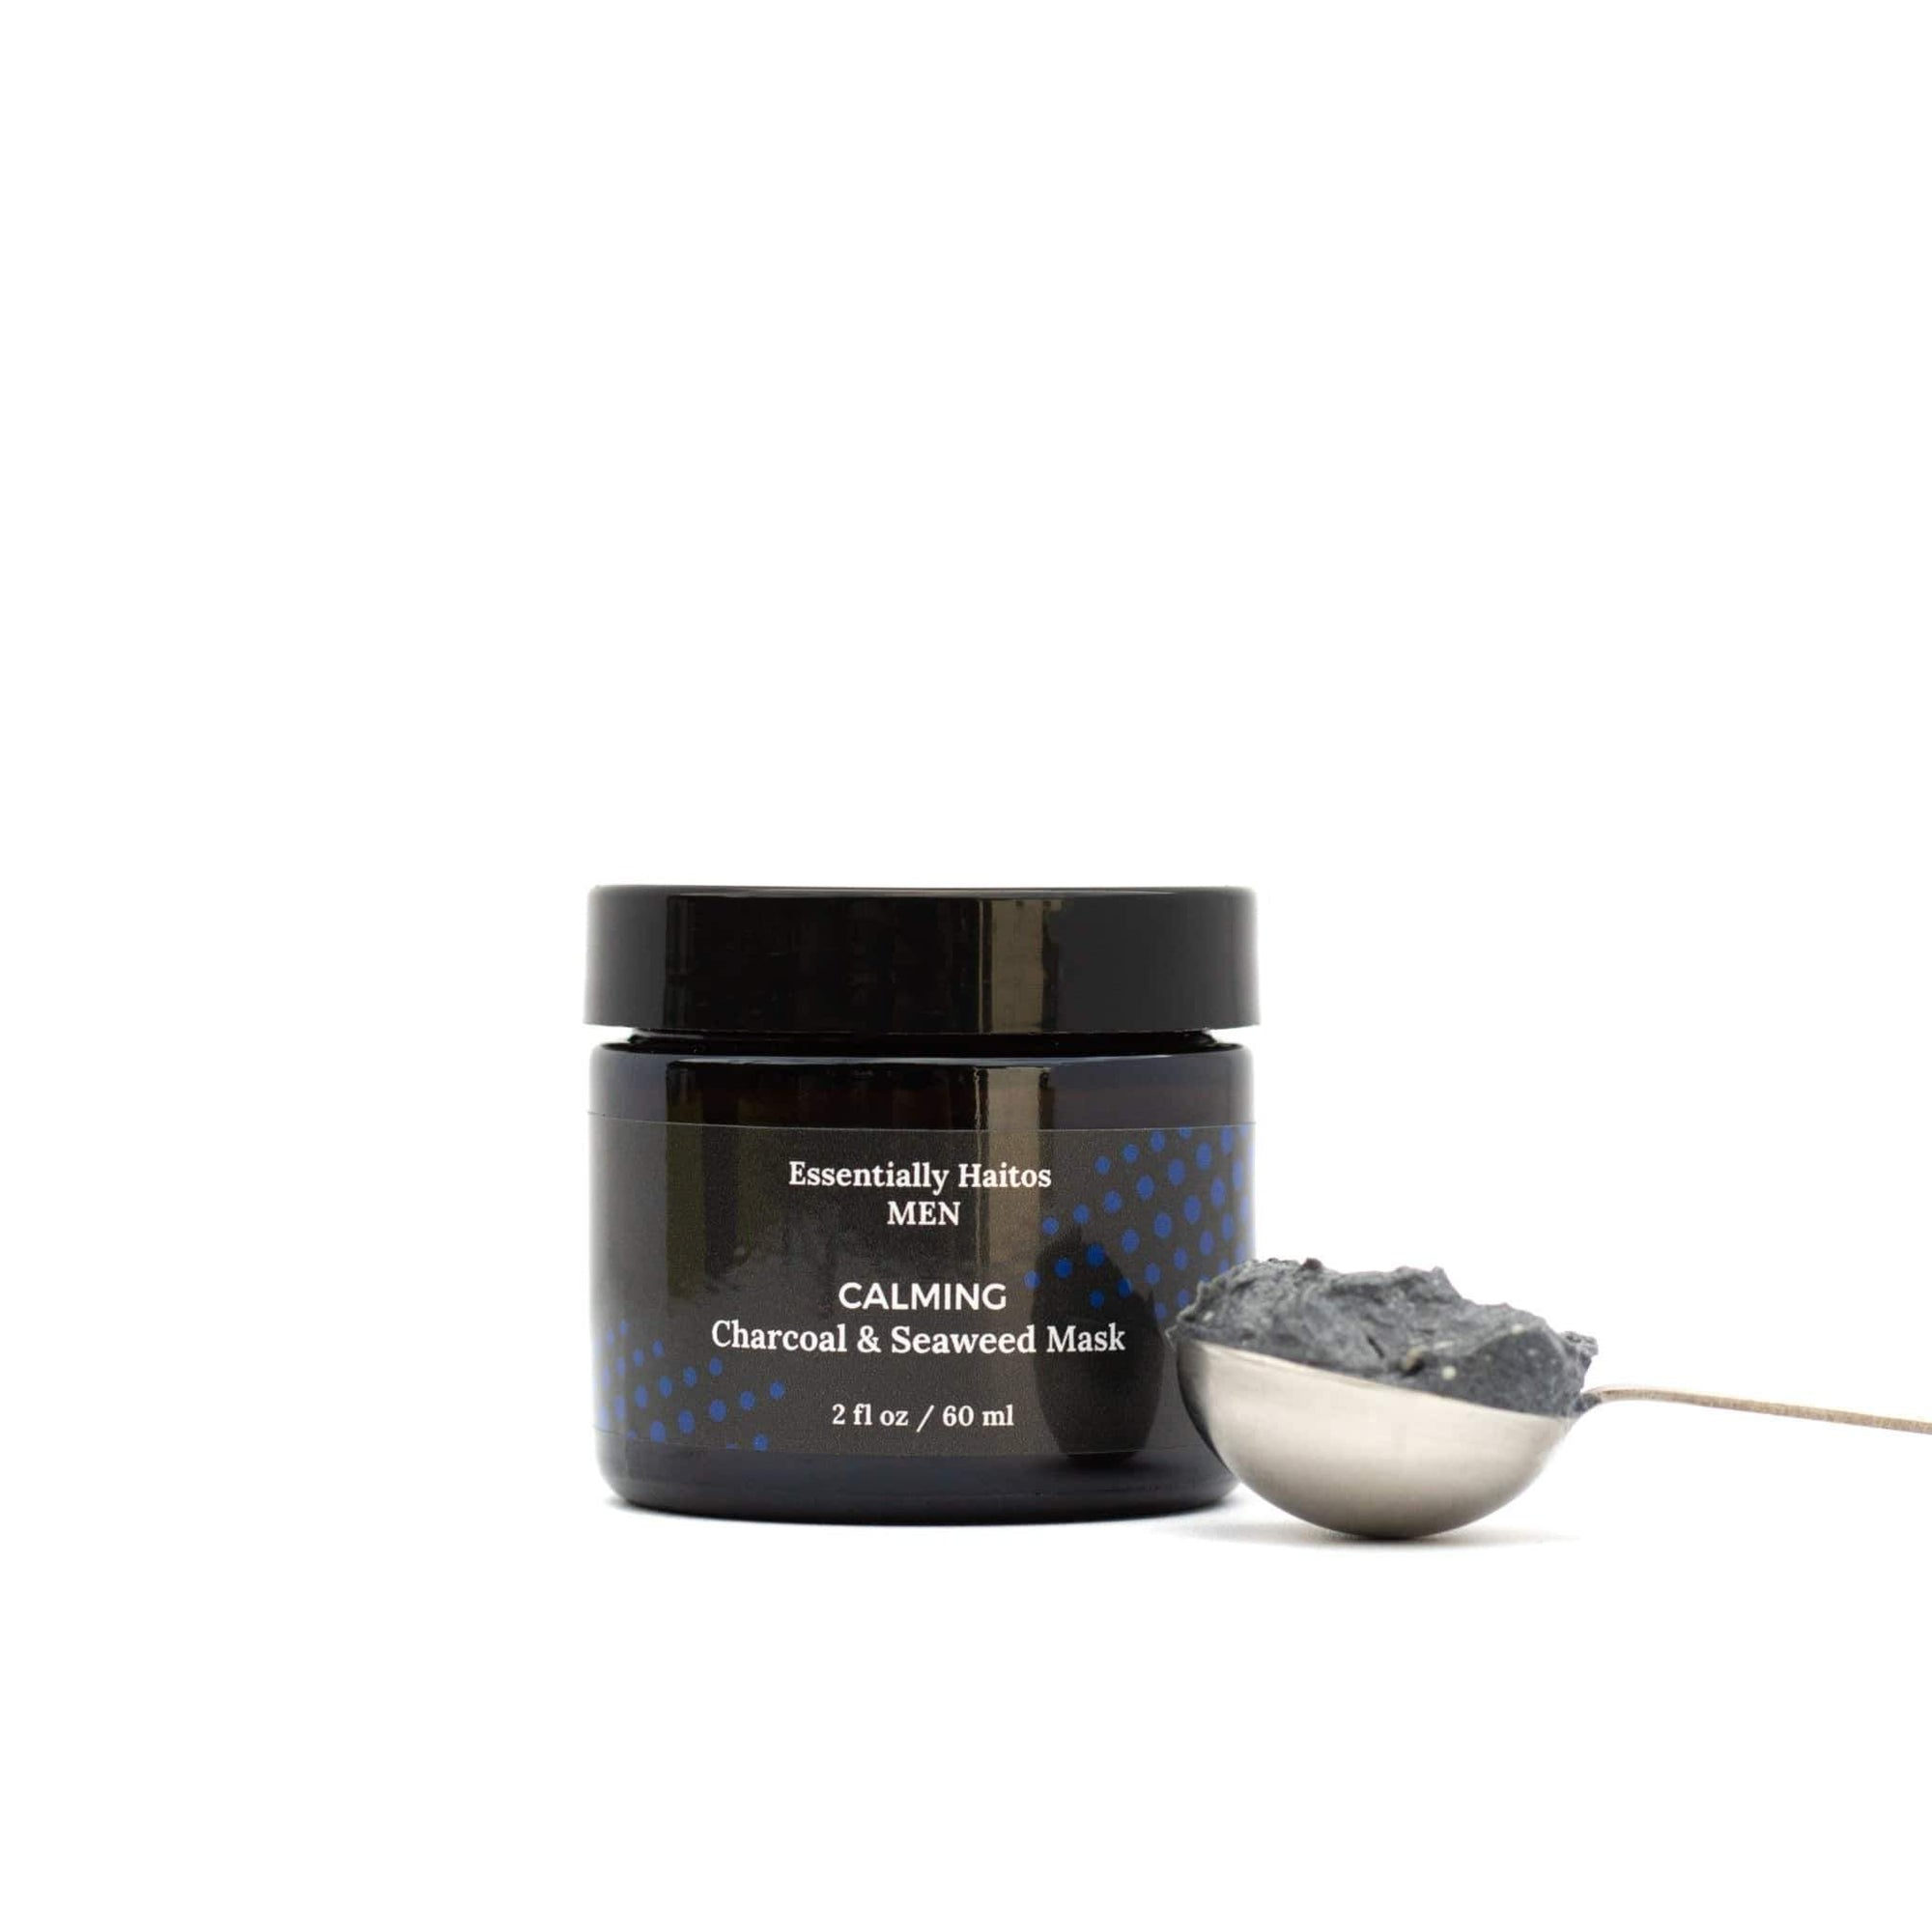 Calming Charcoal and Seaweed Mask